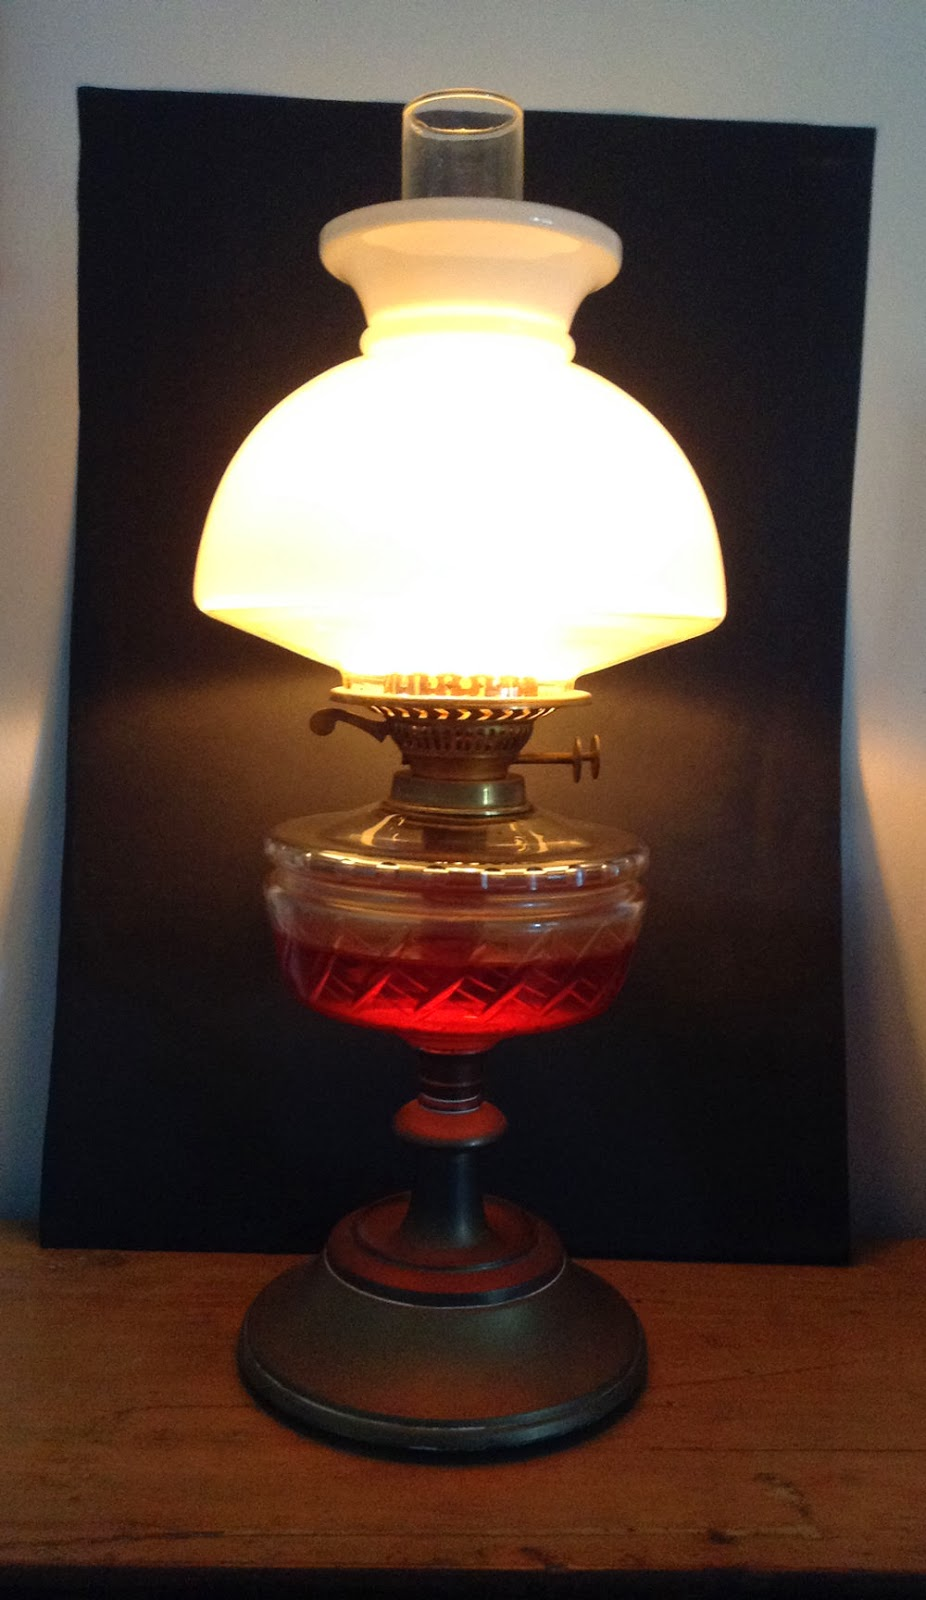 for sale antique english oil lamp for sale reduced by 20 beautiful. Black Bedroom Furniture Sets. Home Design Ideas